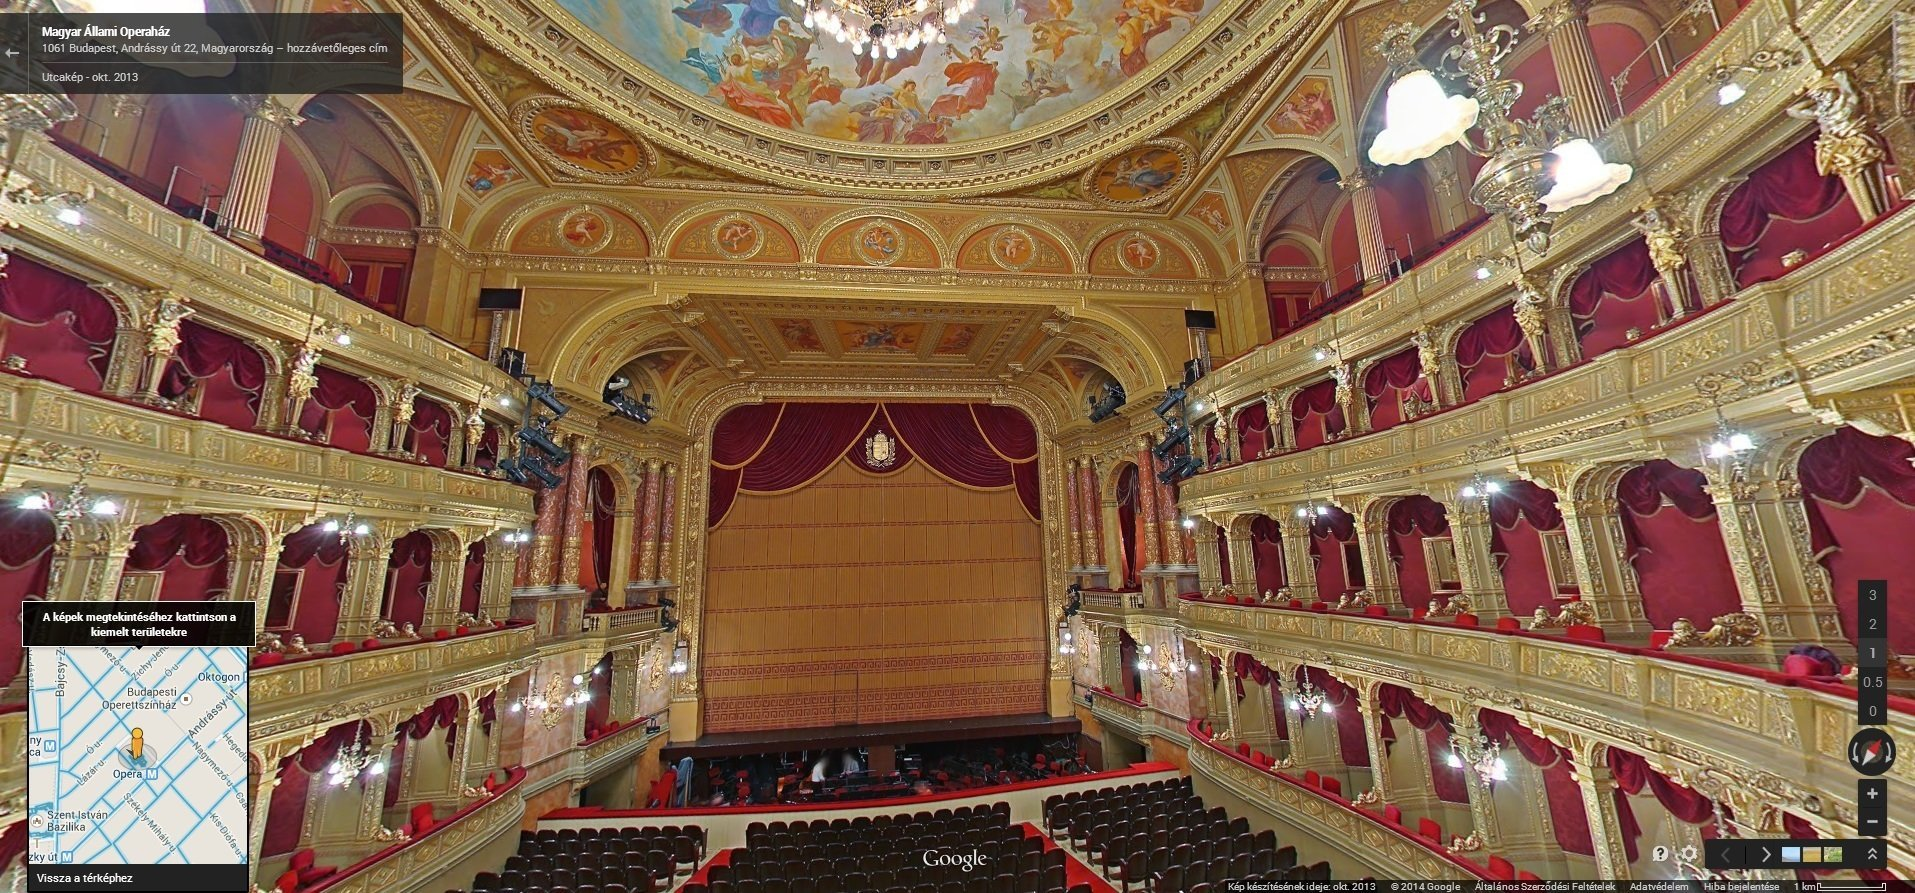 Visit The Hungarian State Opera House Virtually!